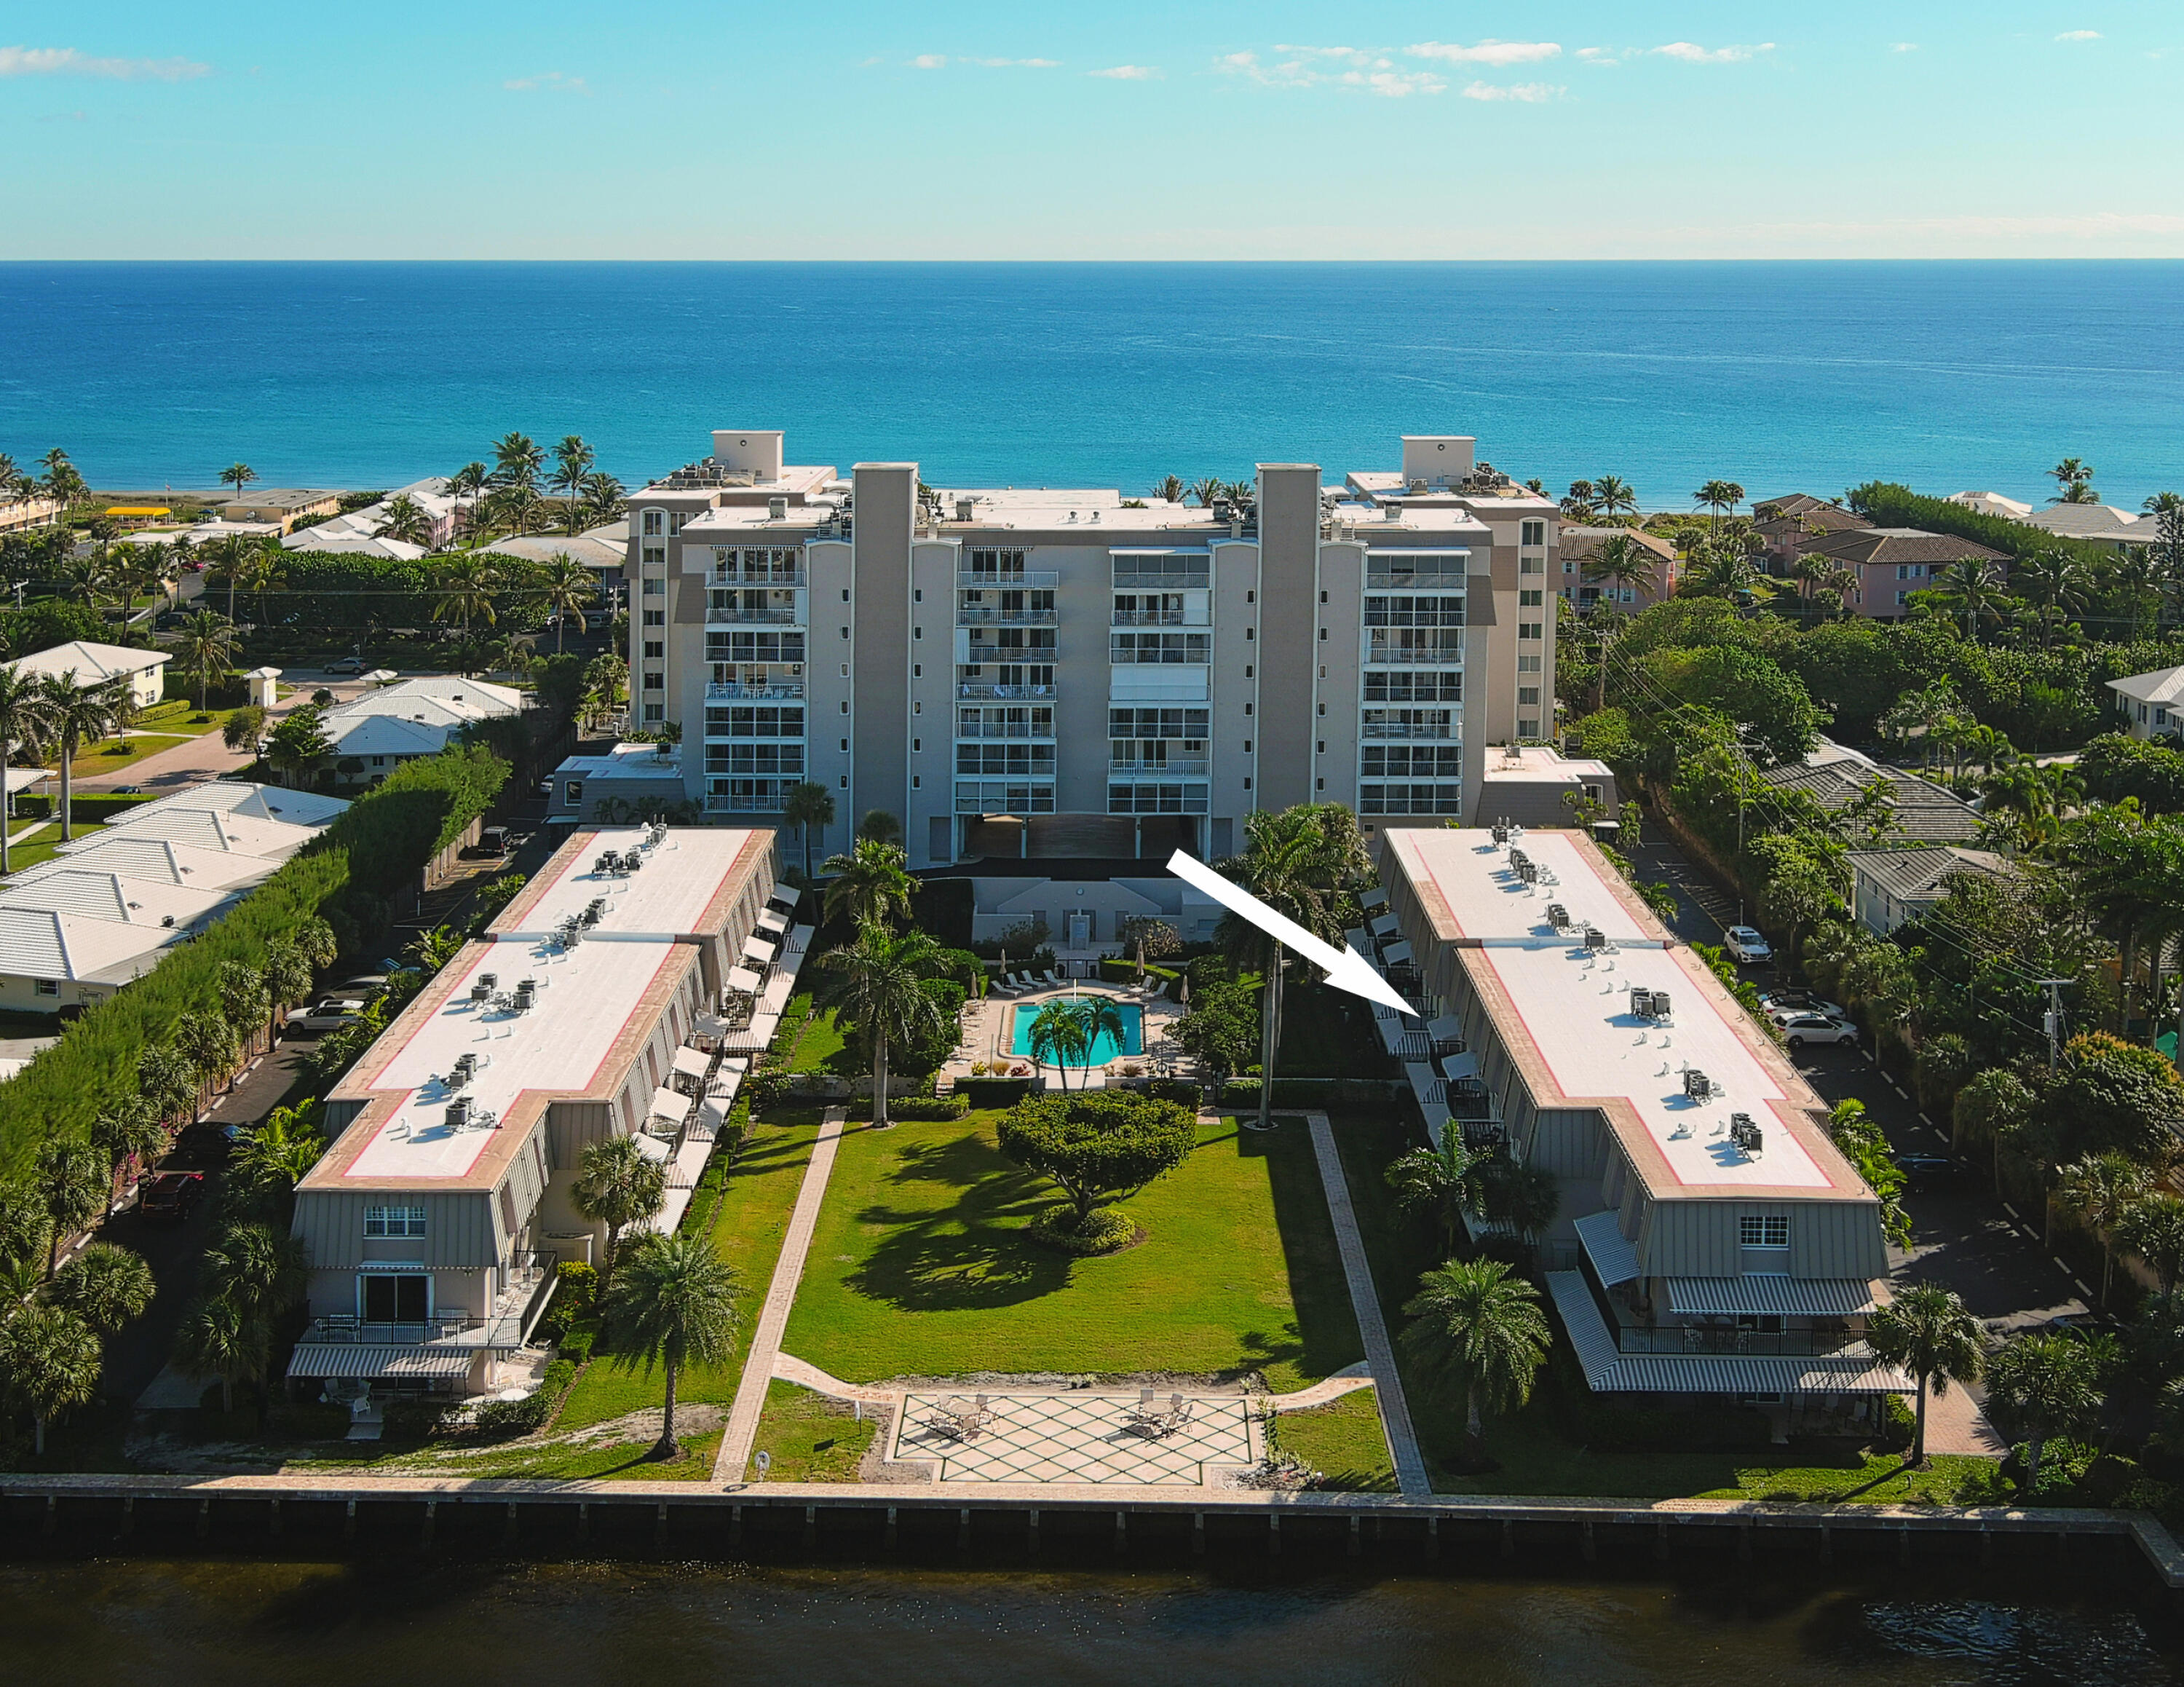 Everyone wants a beach home with amazing views at the Delray Beach Club Apartments! Come see this beautiful spacious 3 story high ceilings, 3 bedrooms, 3.5 baths beach townhouse right across the street from your private beach entrance. 2 outdoor living areas with water views from a large balcony and a beautiful porch where you can walk right out to the Intracoastal. It offers a private elevator, 2 AC units, a utility room, CA wood shutters throughout, a private beach access, magnificent Intracoastal pool, plus 2 hotel rooms for your overflow guests. It also has 1 covered and 2 uncovered parking spots. For security the complex has a 24/7 security guard and a combination of impact windows with shutters for sliders.